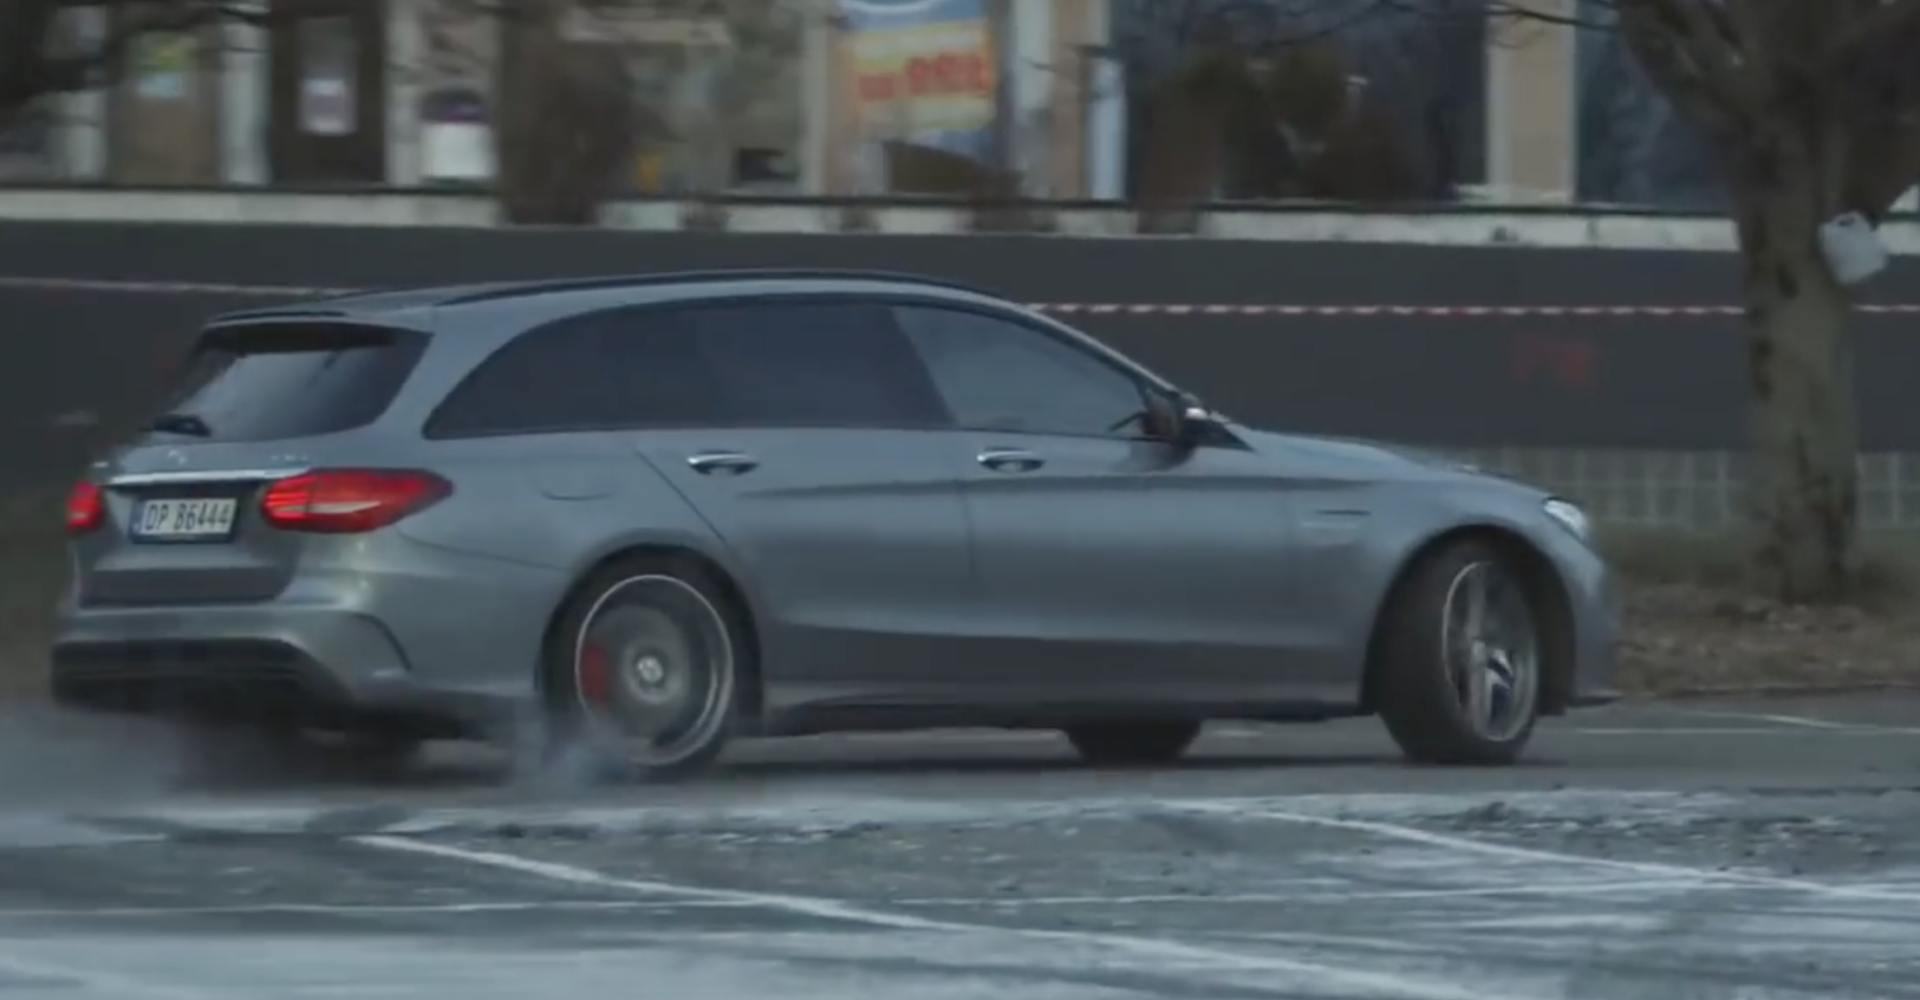 A Grandad With A Heavy Right Foot? Nope, It's 'Pranking' Petter Solberg In Disguise